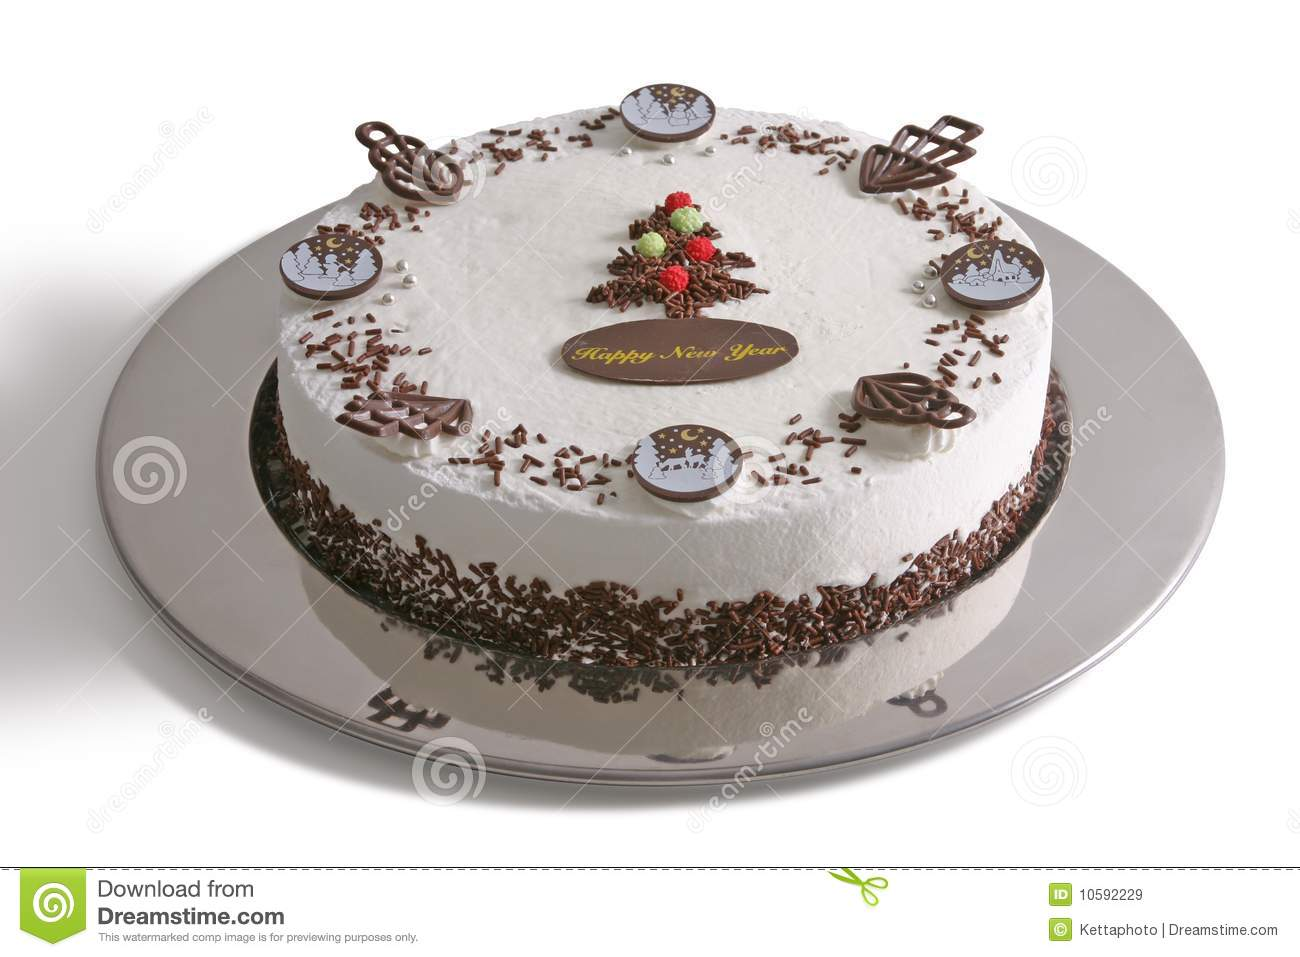 New Year Cake stock image. Image of chocolate, cream ...